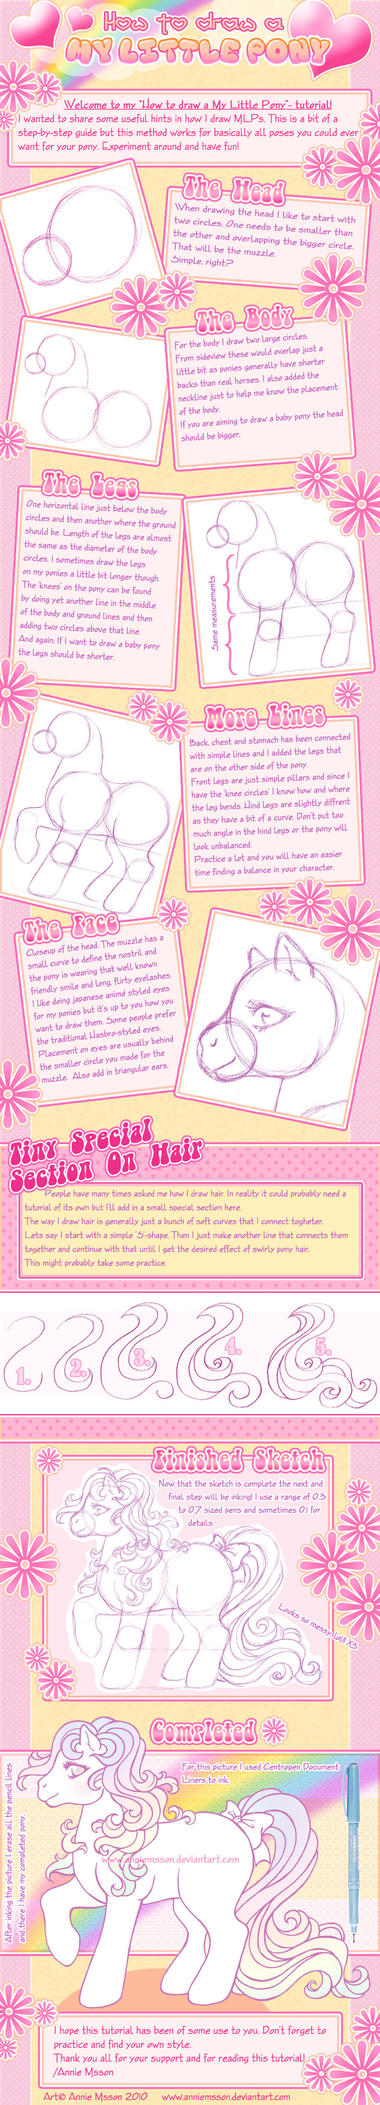 How to draw a MLP -Tutorial by AnnieMsson